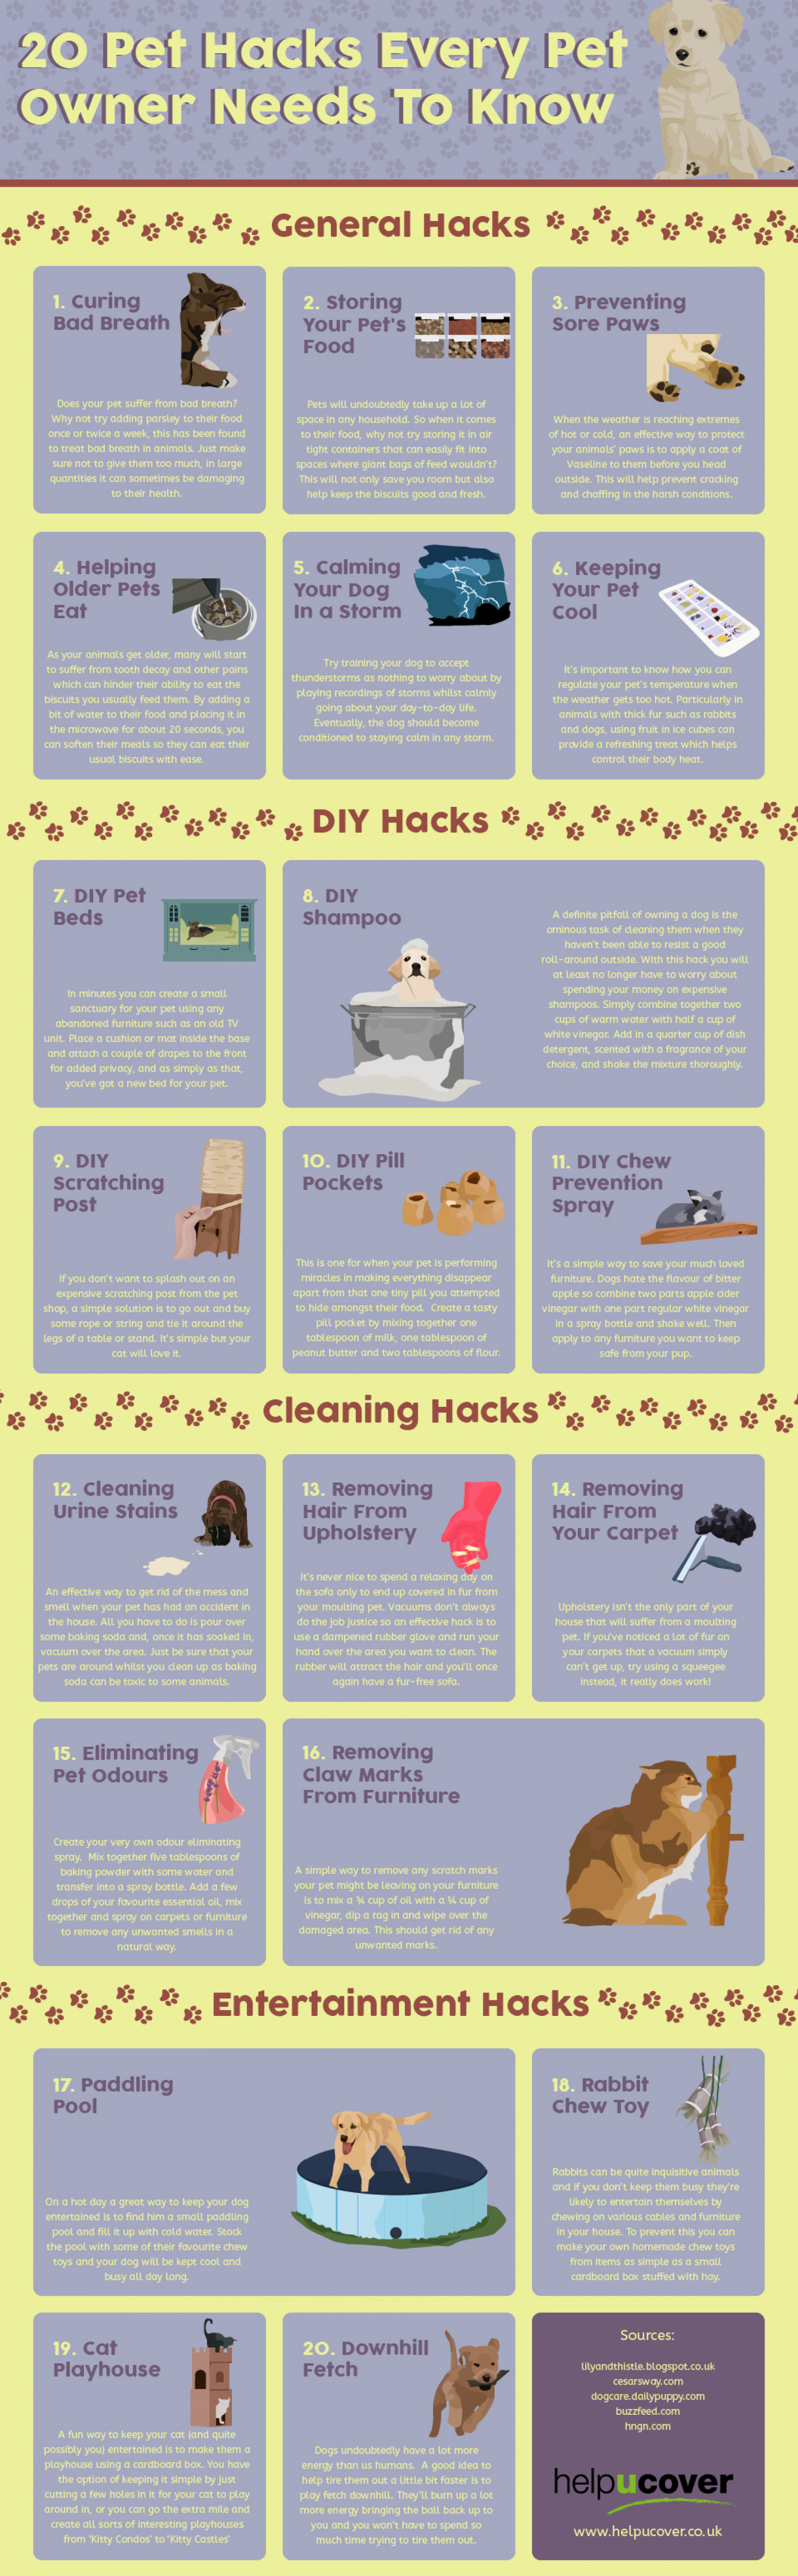 Pet Hacks Every Pet Owner Should Know Infographic